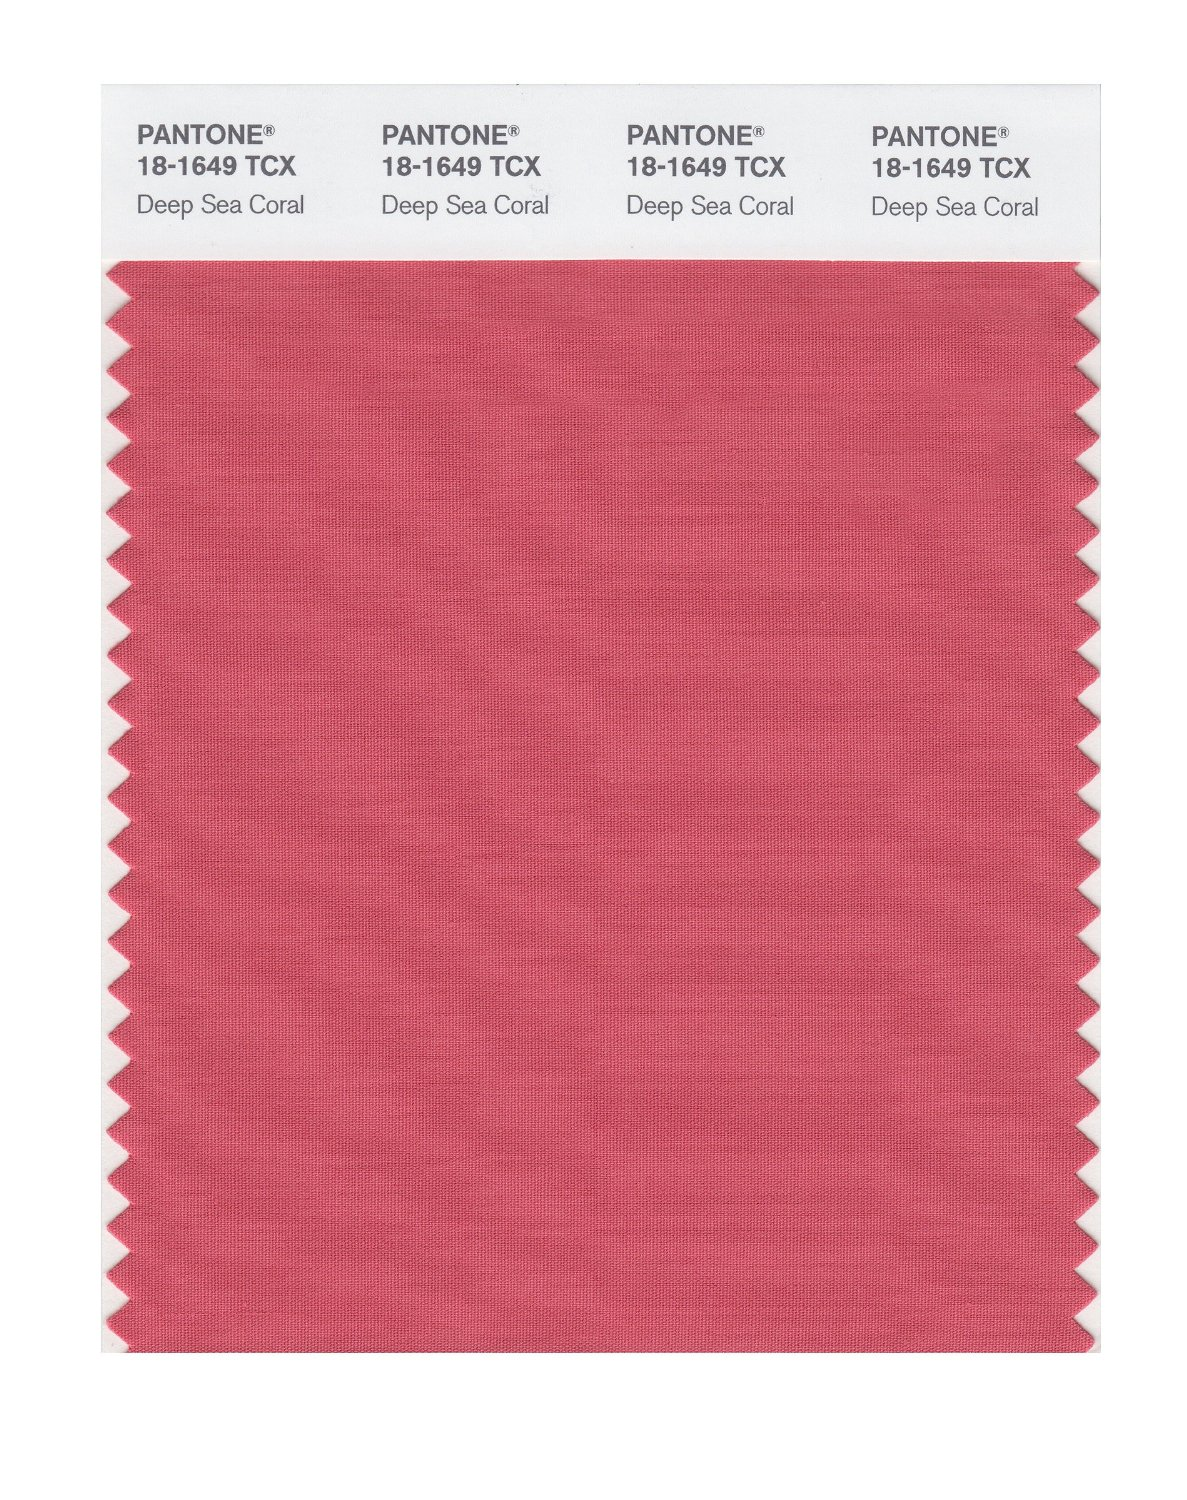 Pantone Smart Swatch 18-1649 Deep Sea Coral